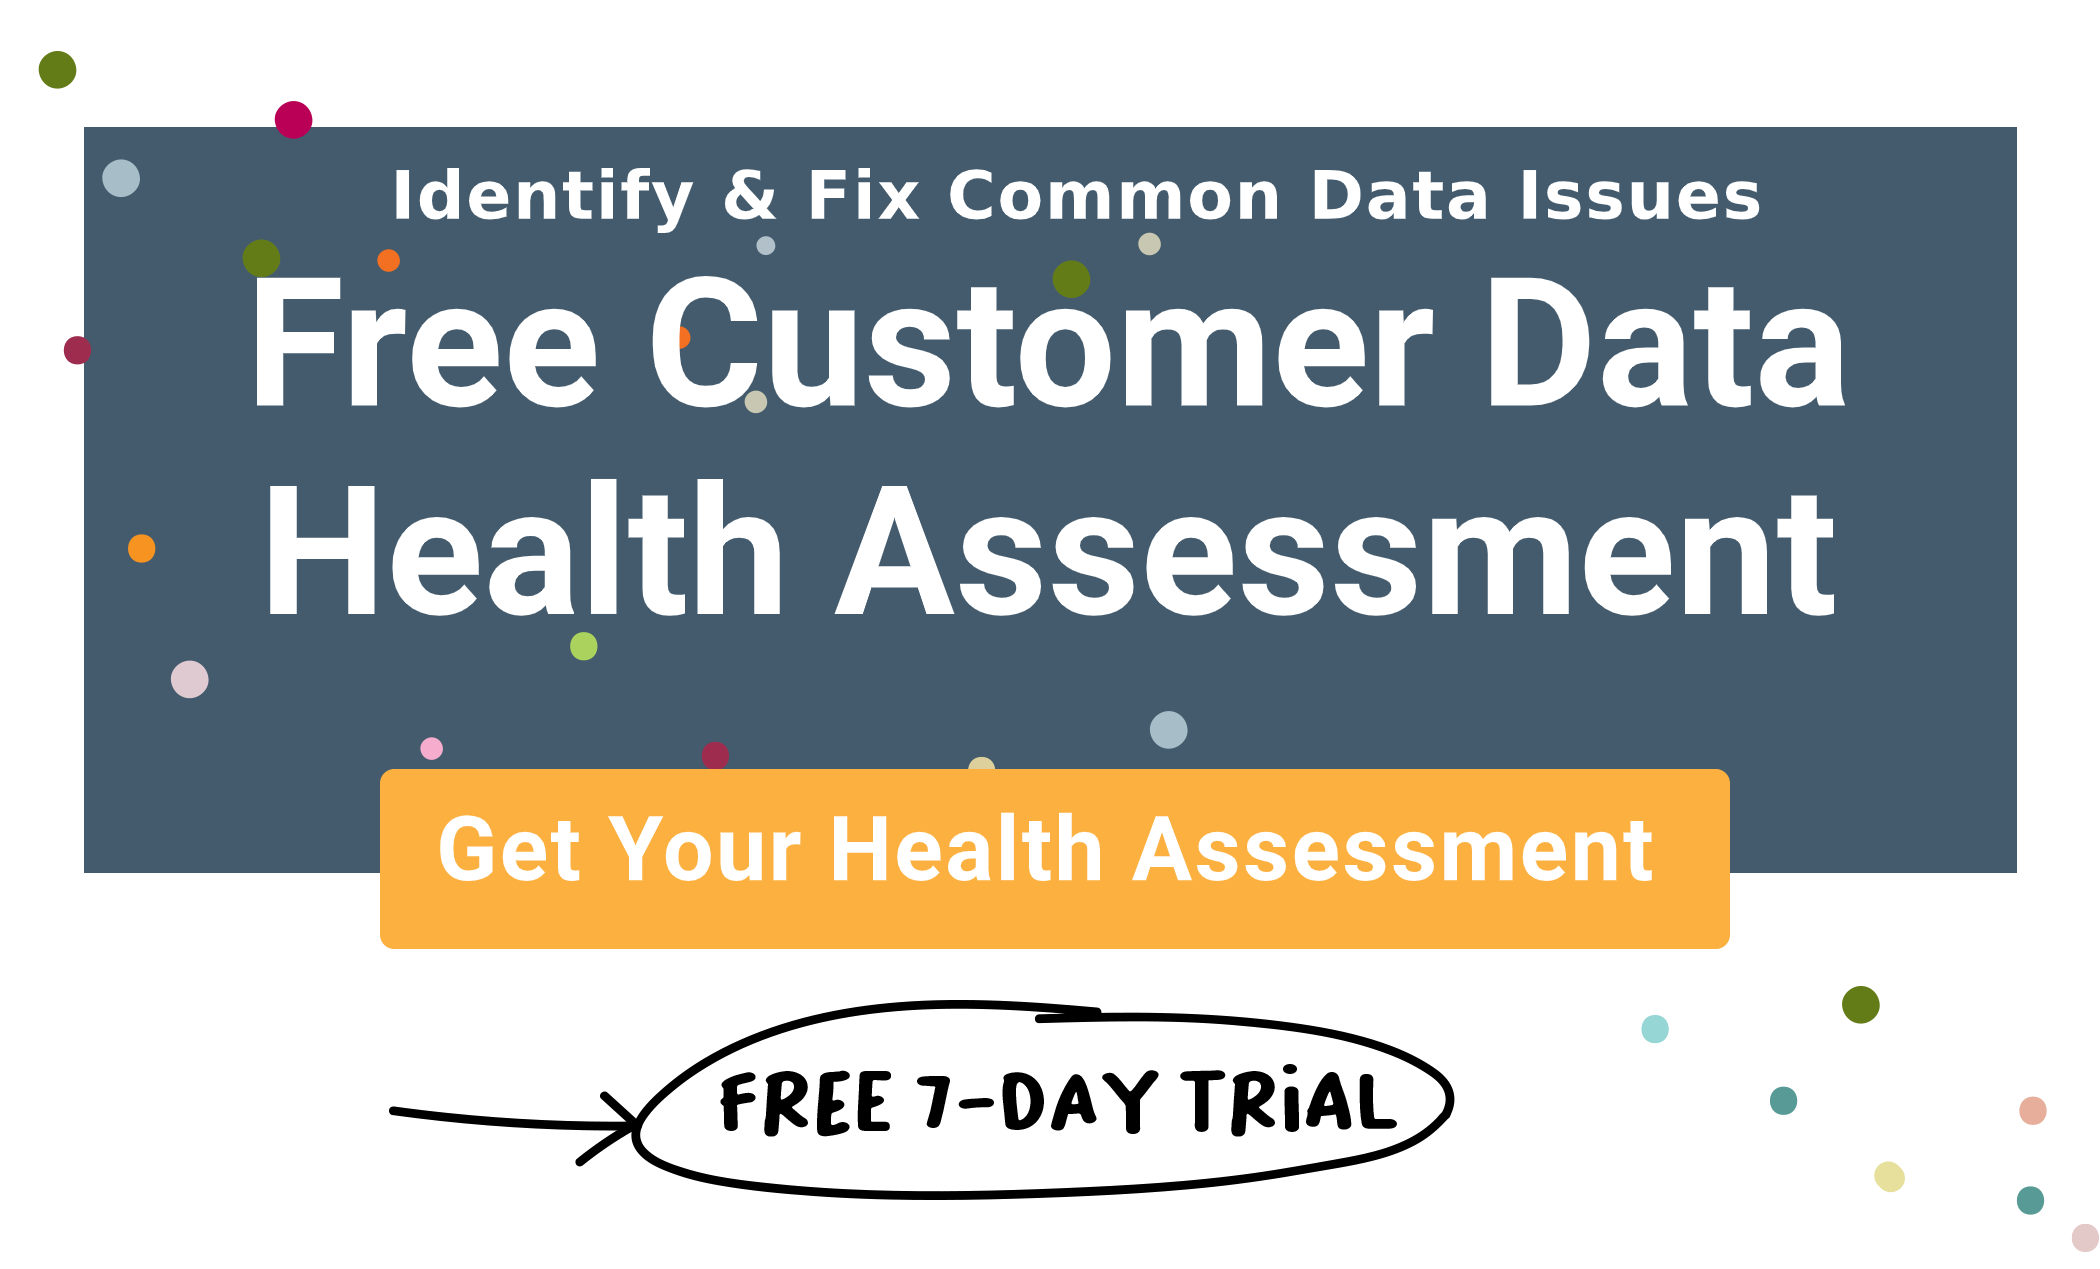 Free Customer Data Health Assessment